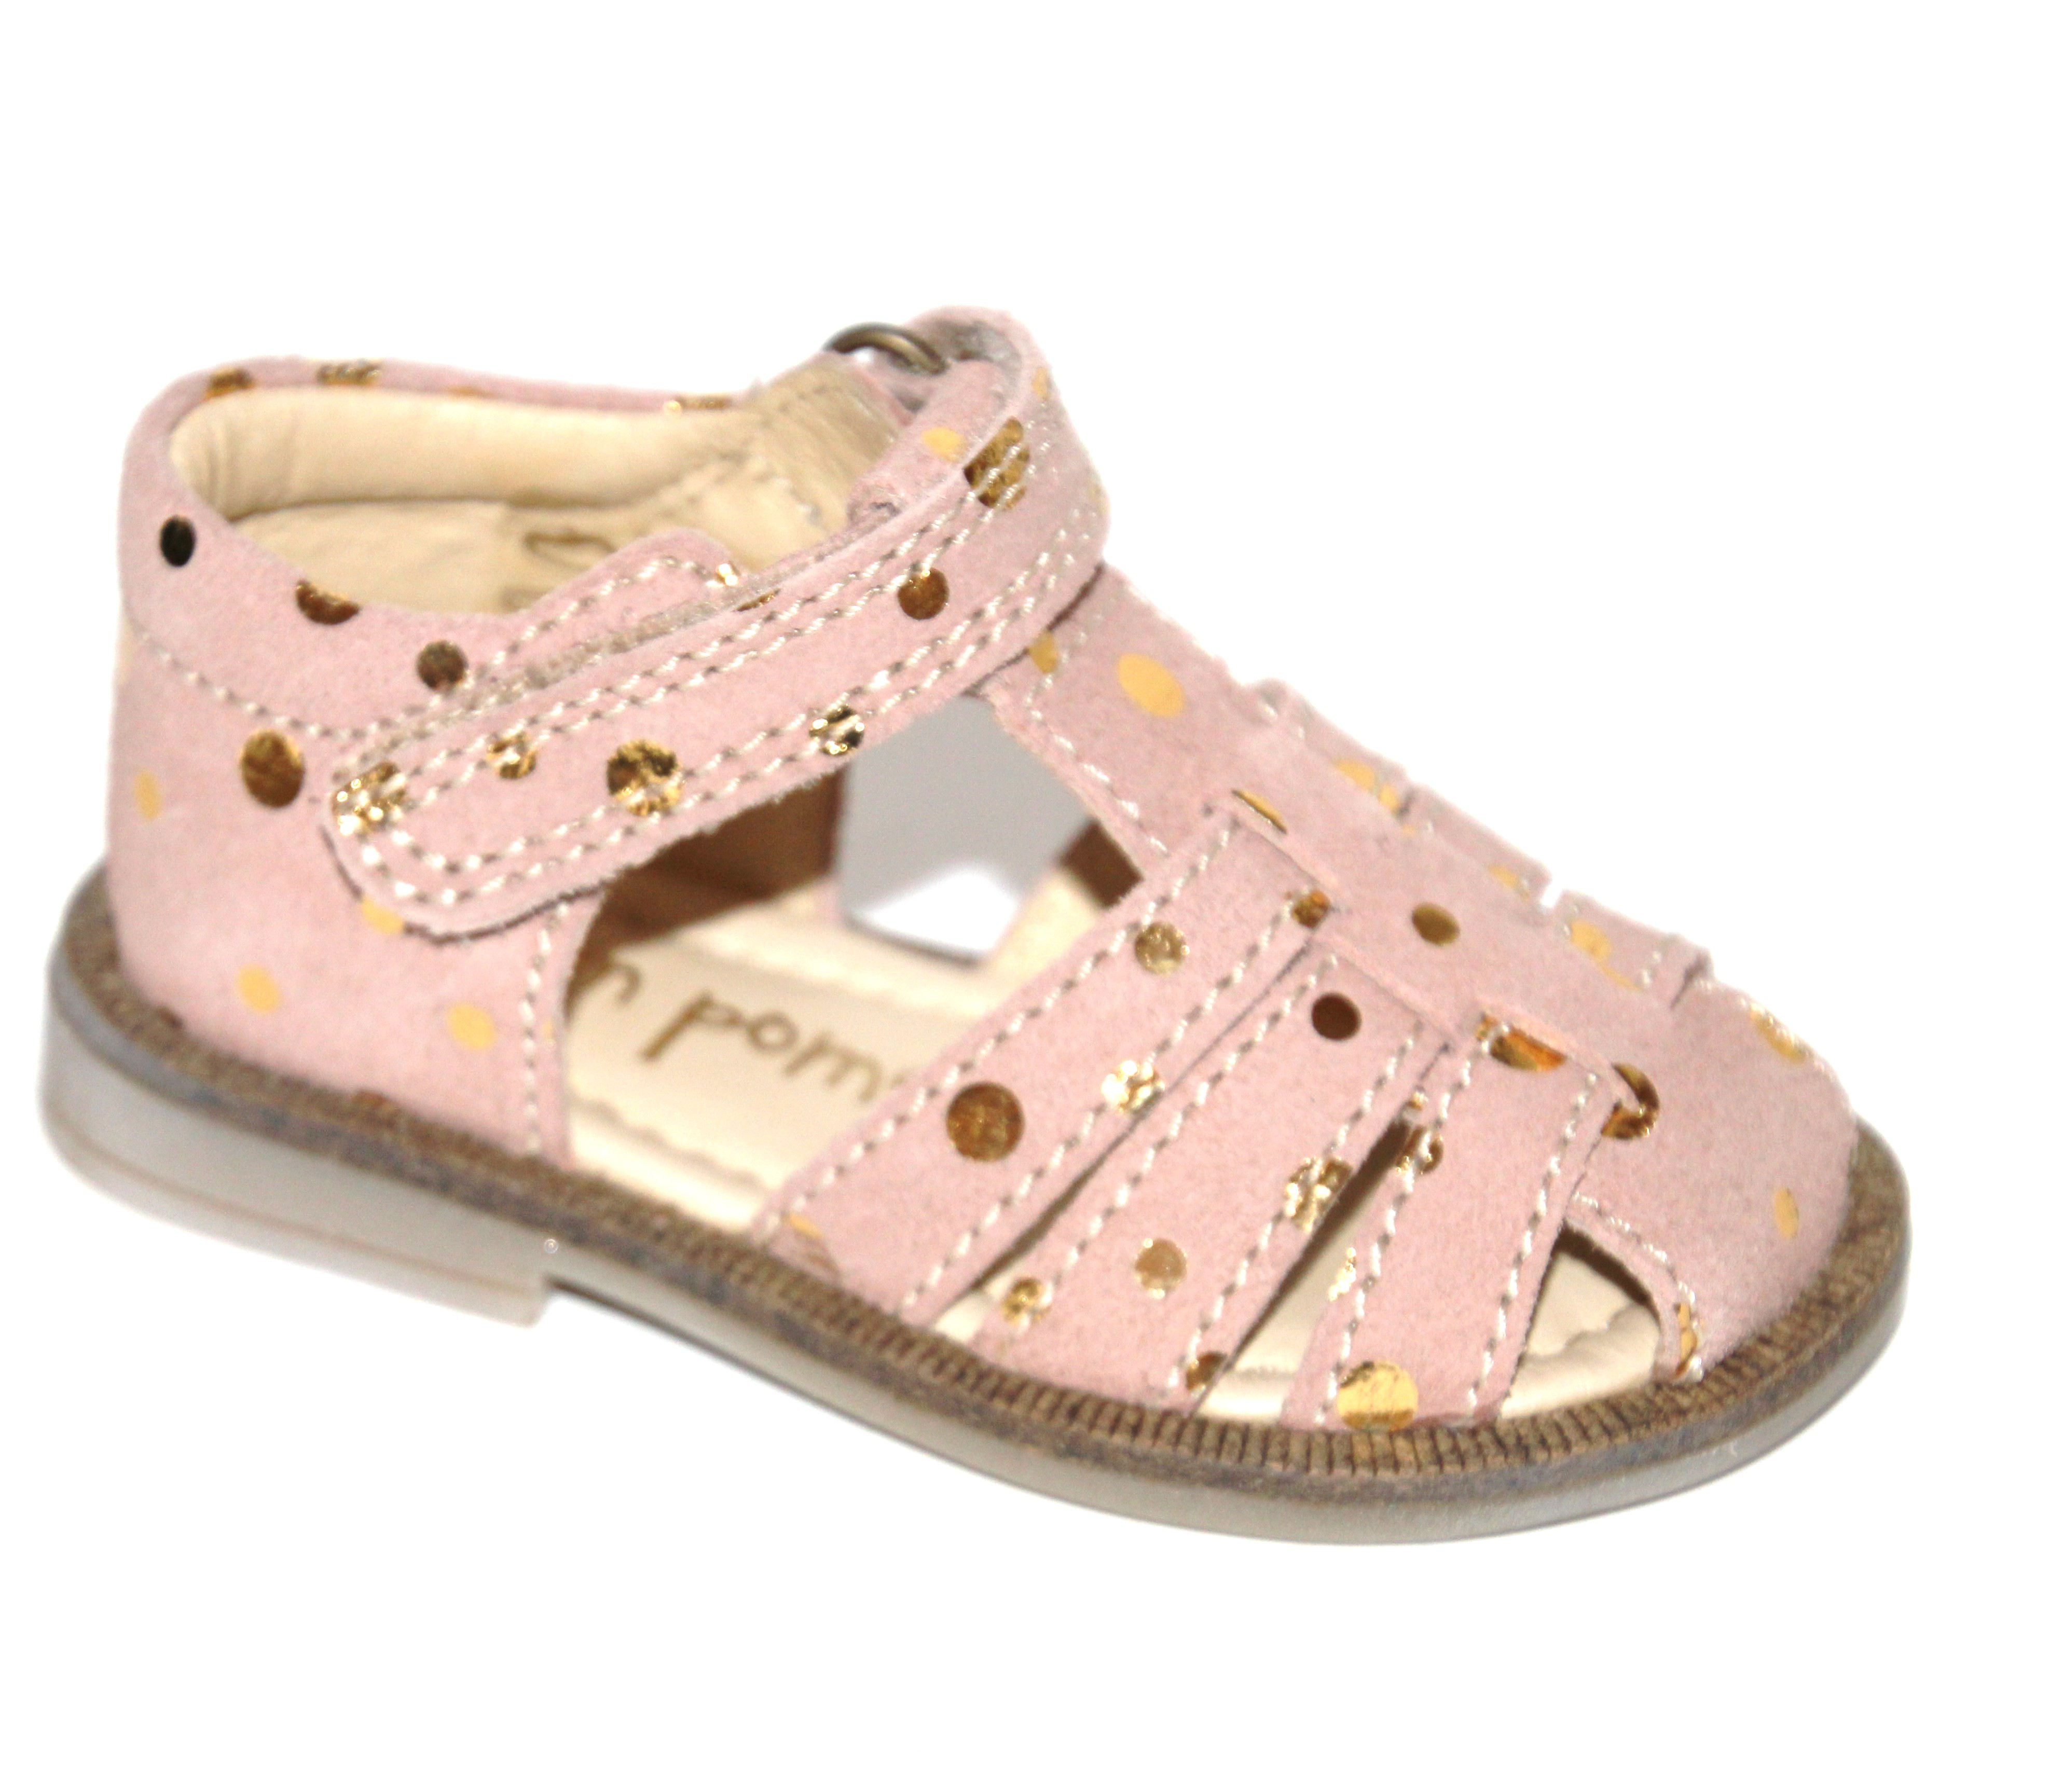 Pom Pom sandal i Peach Gold Dot